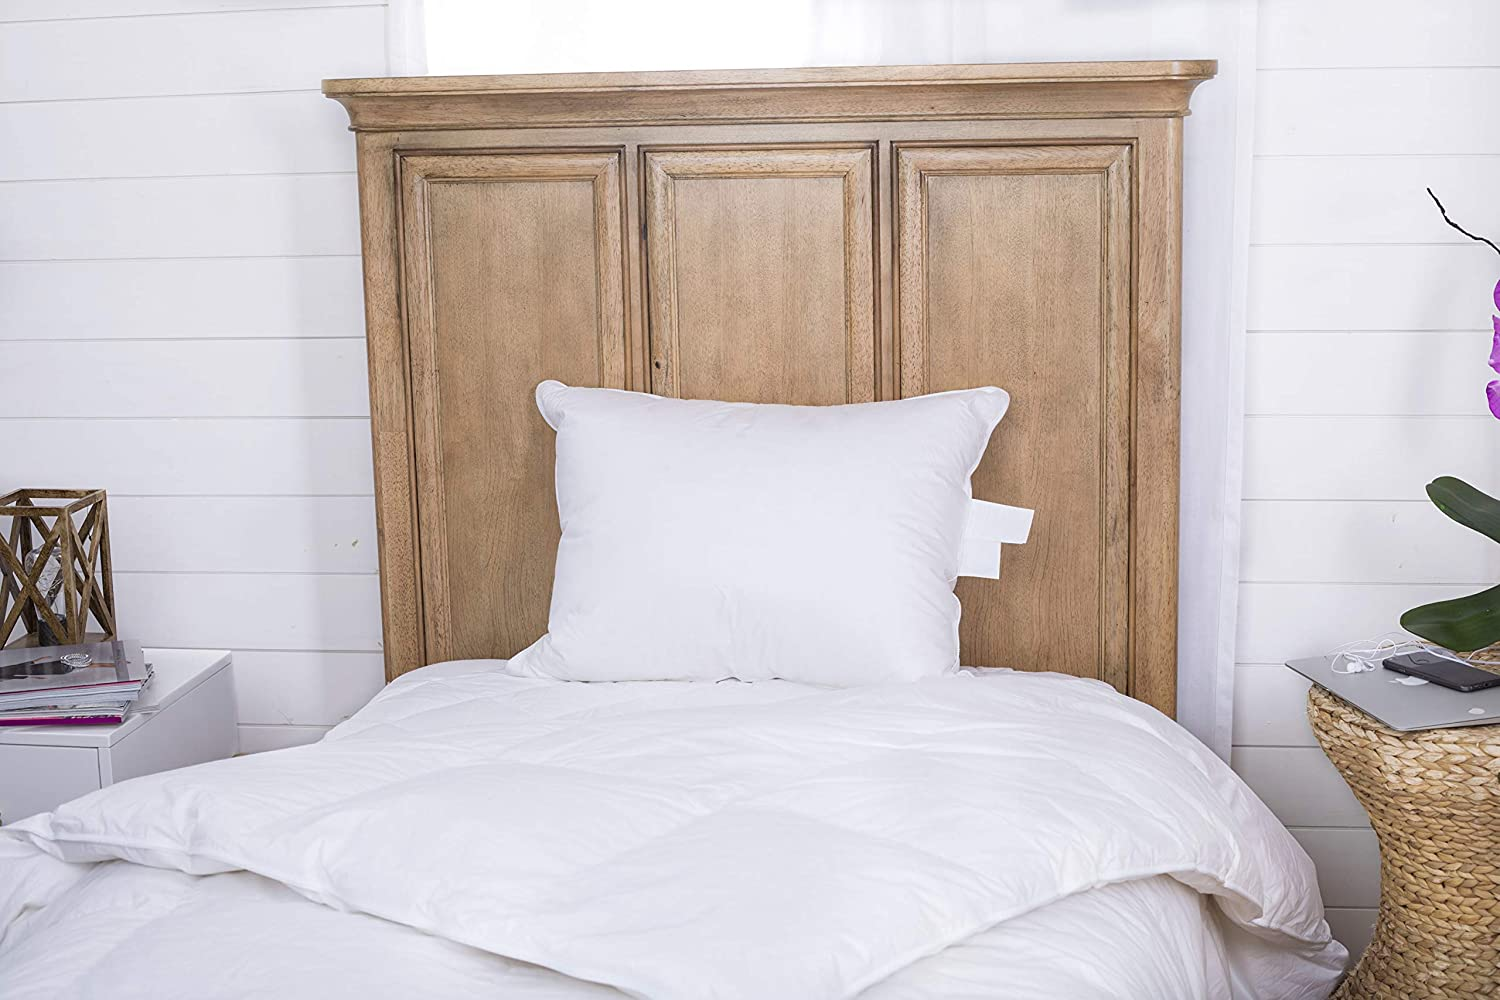 Continental Bedding P5050-S Better Down & Feather Blend Pillow-50% White Goose Down & 50% Feather, Standard Size